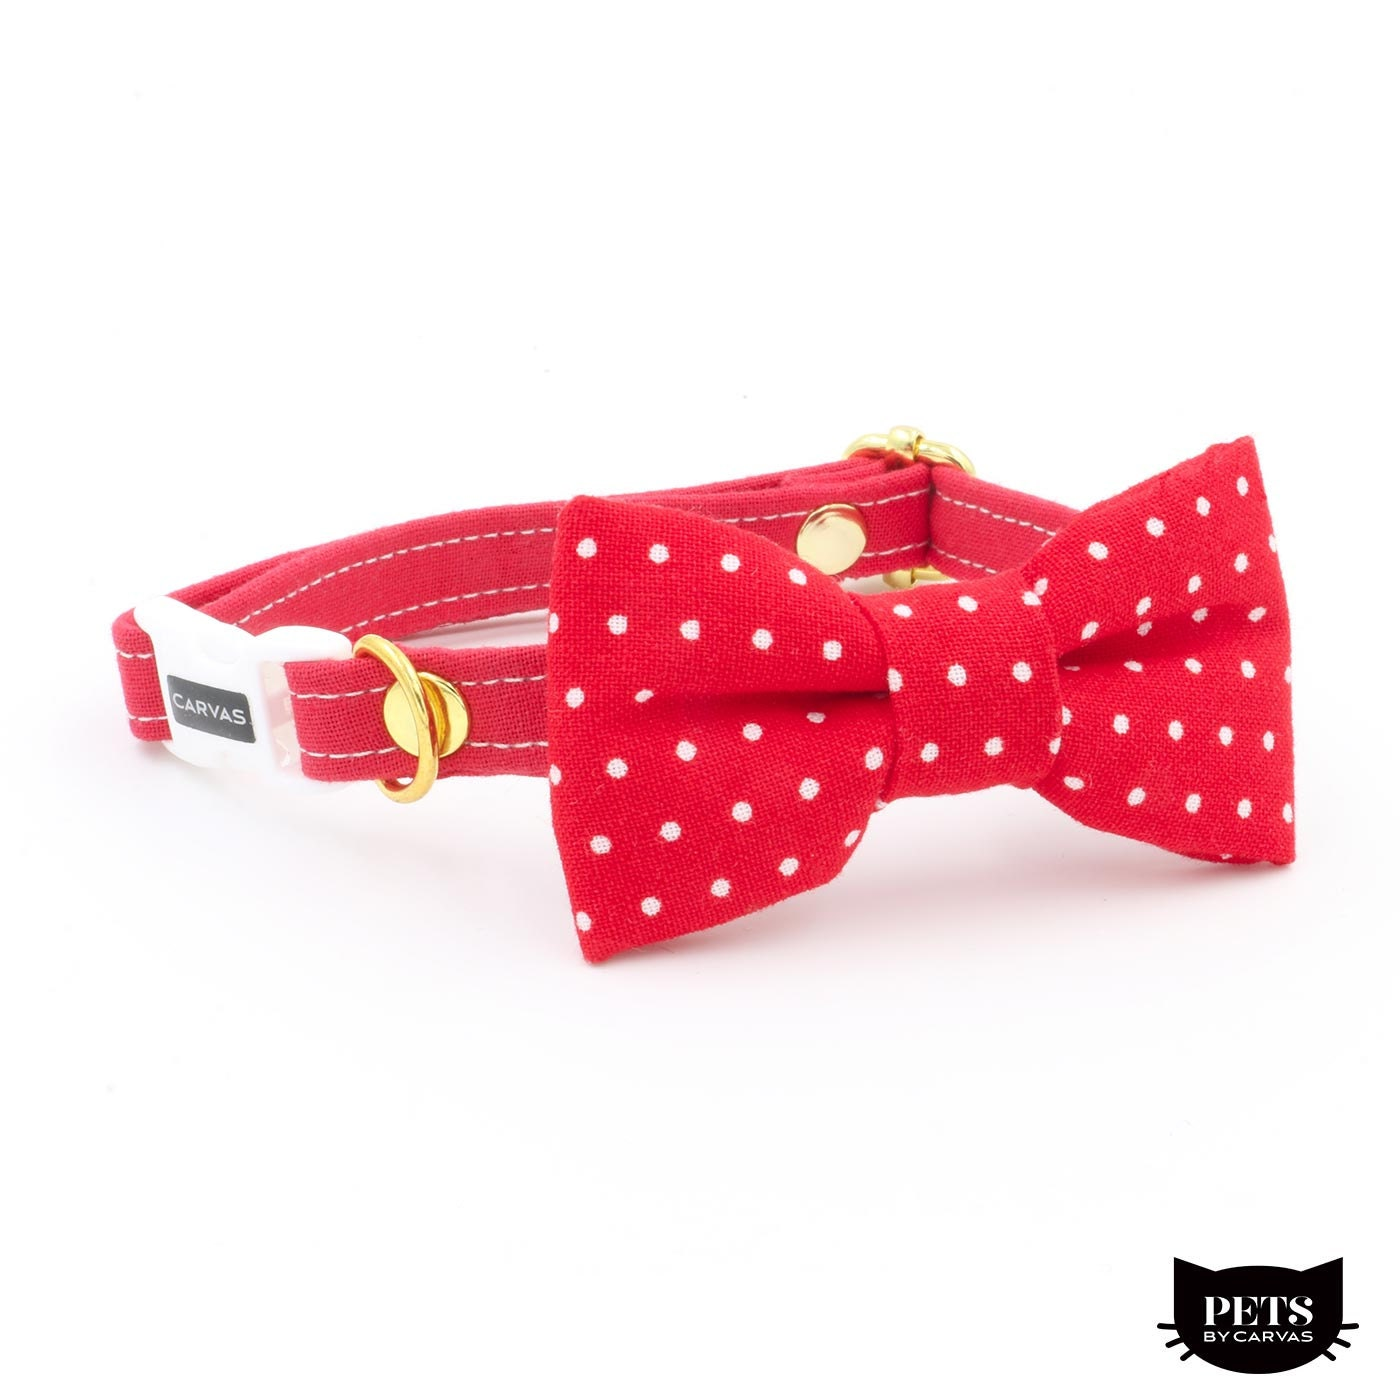 timothy cat collar bow tie set with breakaway safety buckle